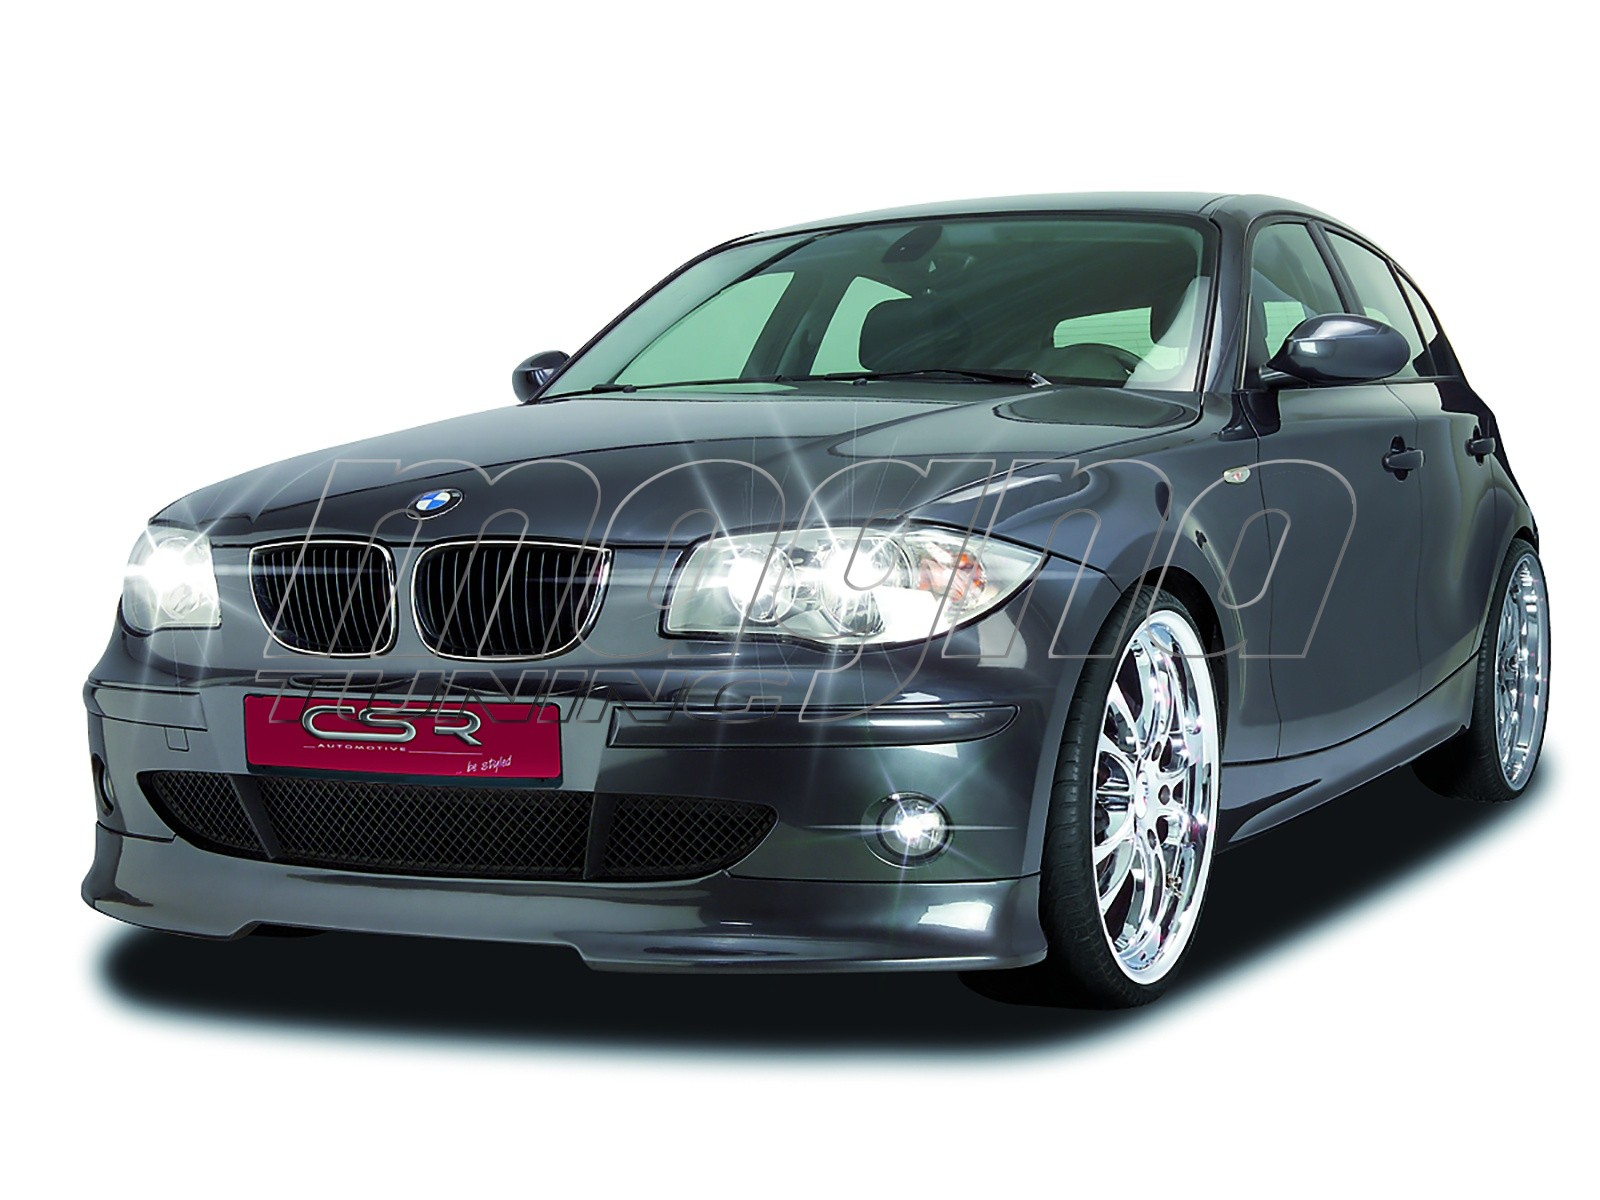 bmw e87 o2 line front bumper extension. Black Bedroom Furniture Sets. Home Design Ideas